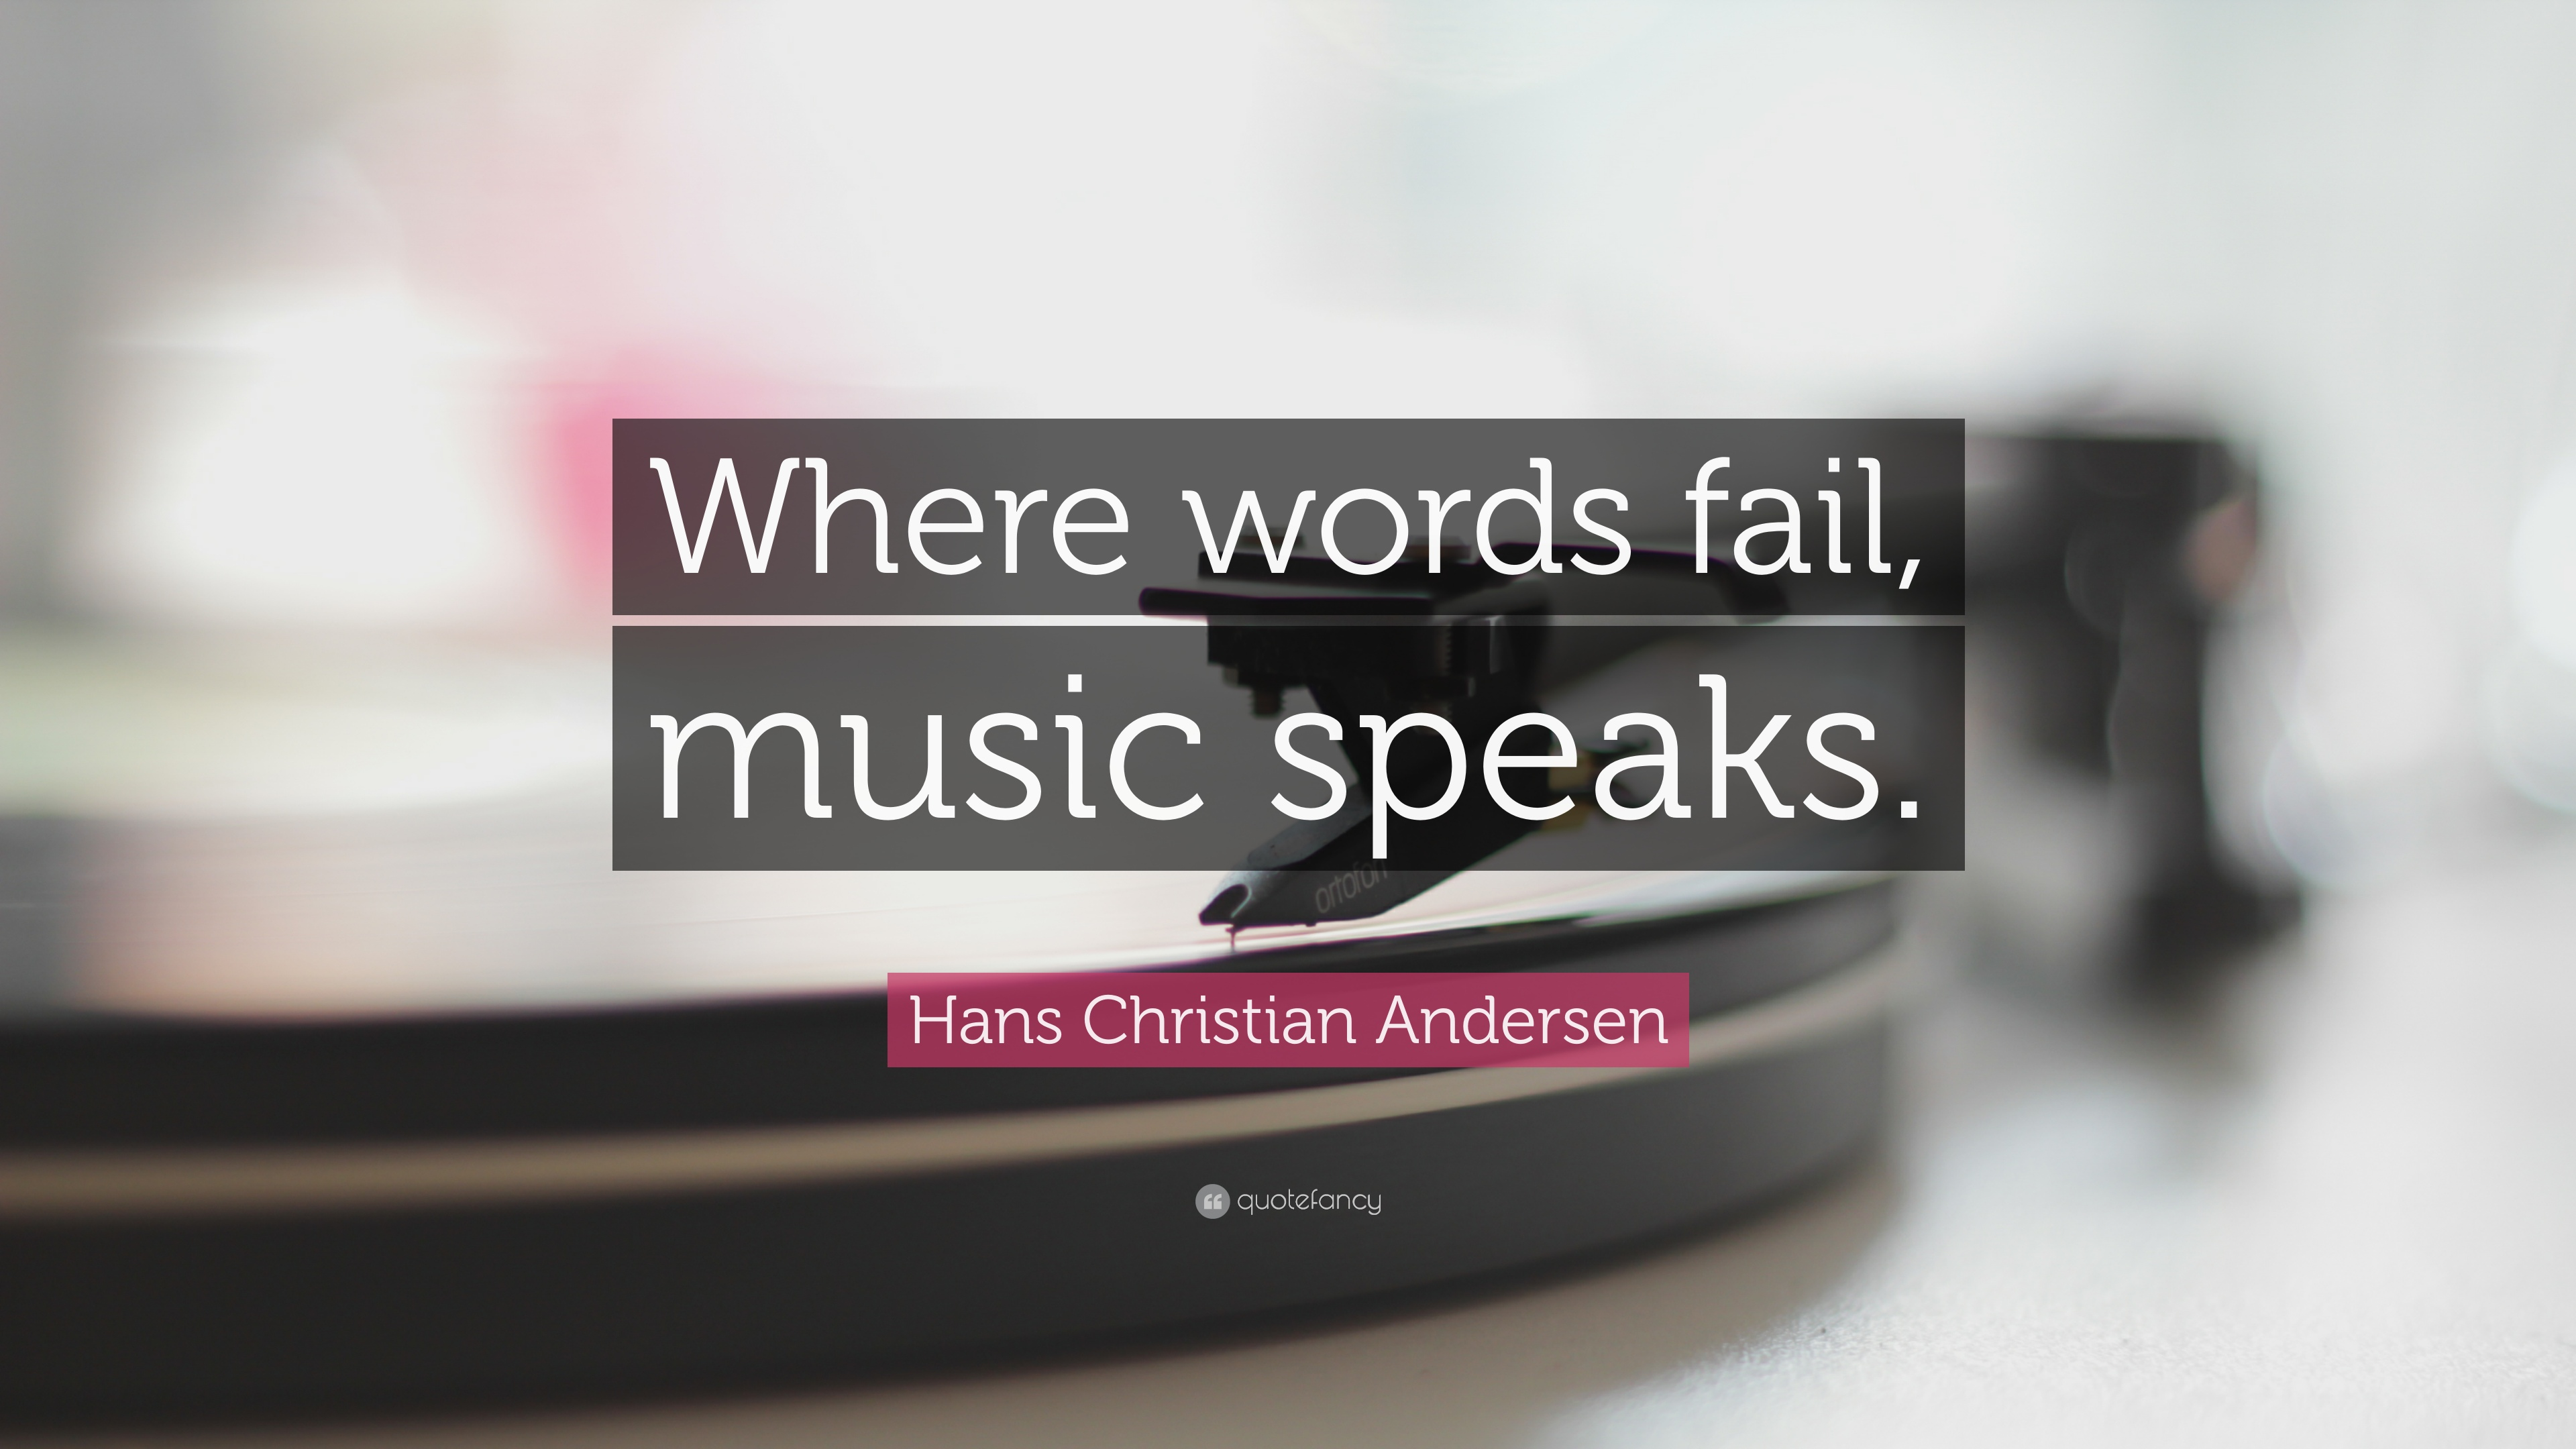 Spiritual Quotes For Laptop Wallpaper Hans Christian Andersen Quote Where Words Fail Music